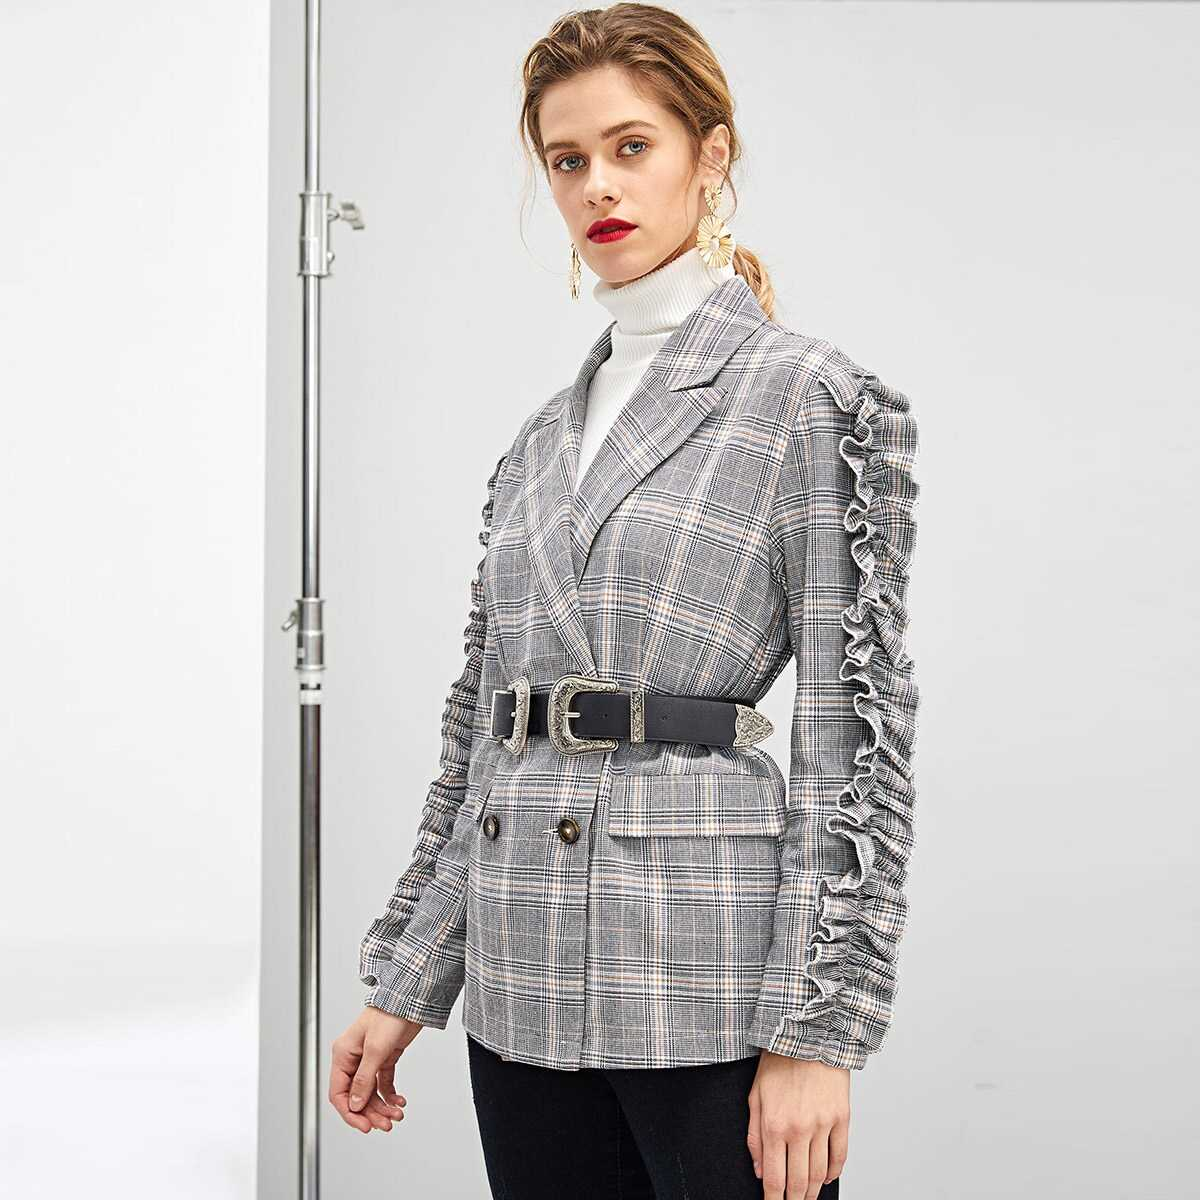 Ruffle Trim Double Breasted Plaid Blazer Without Belt - Shein - GOOFASH